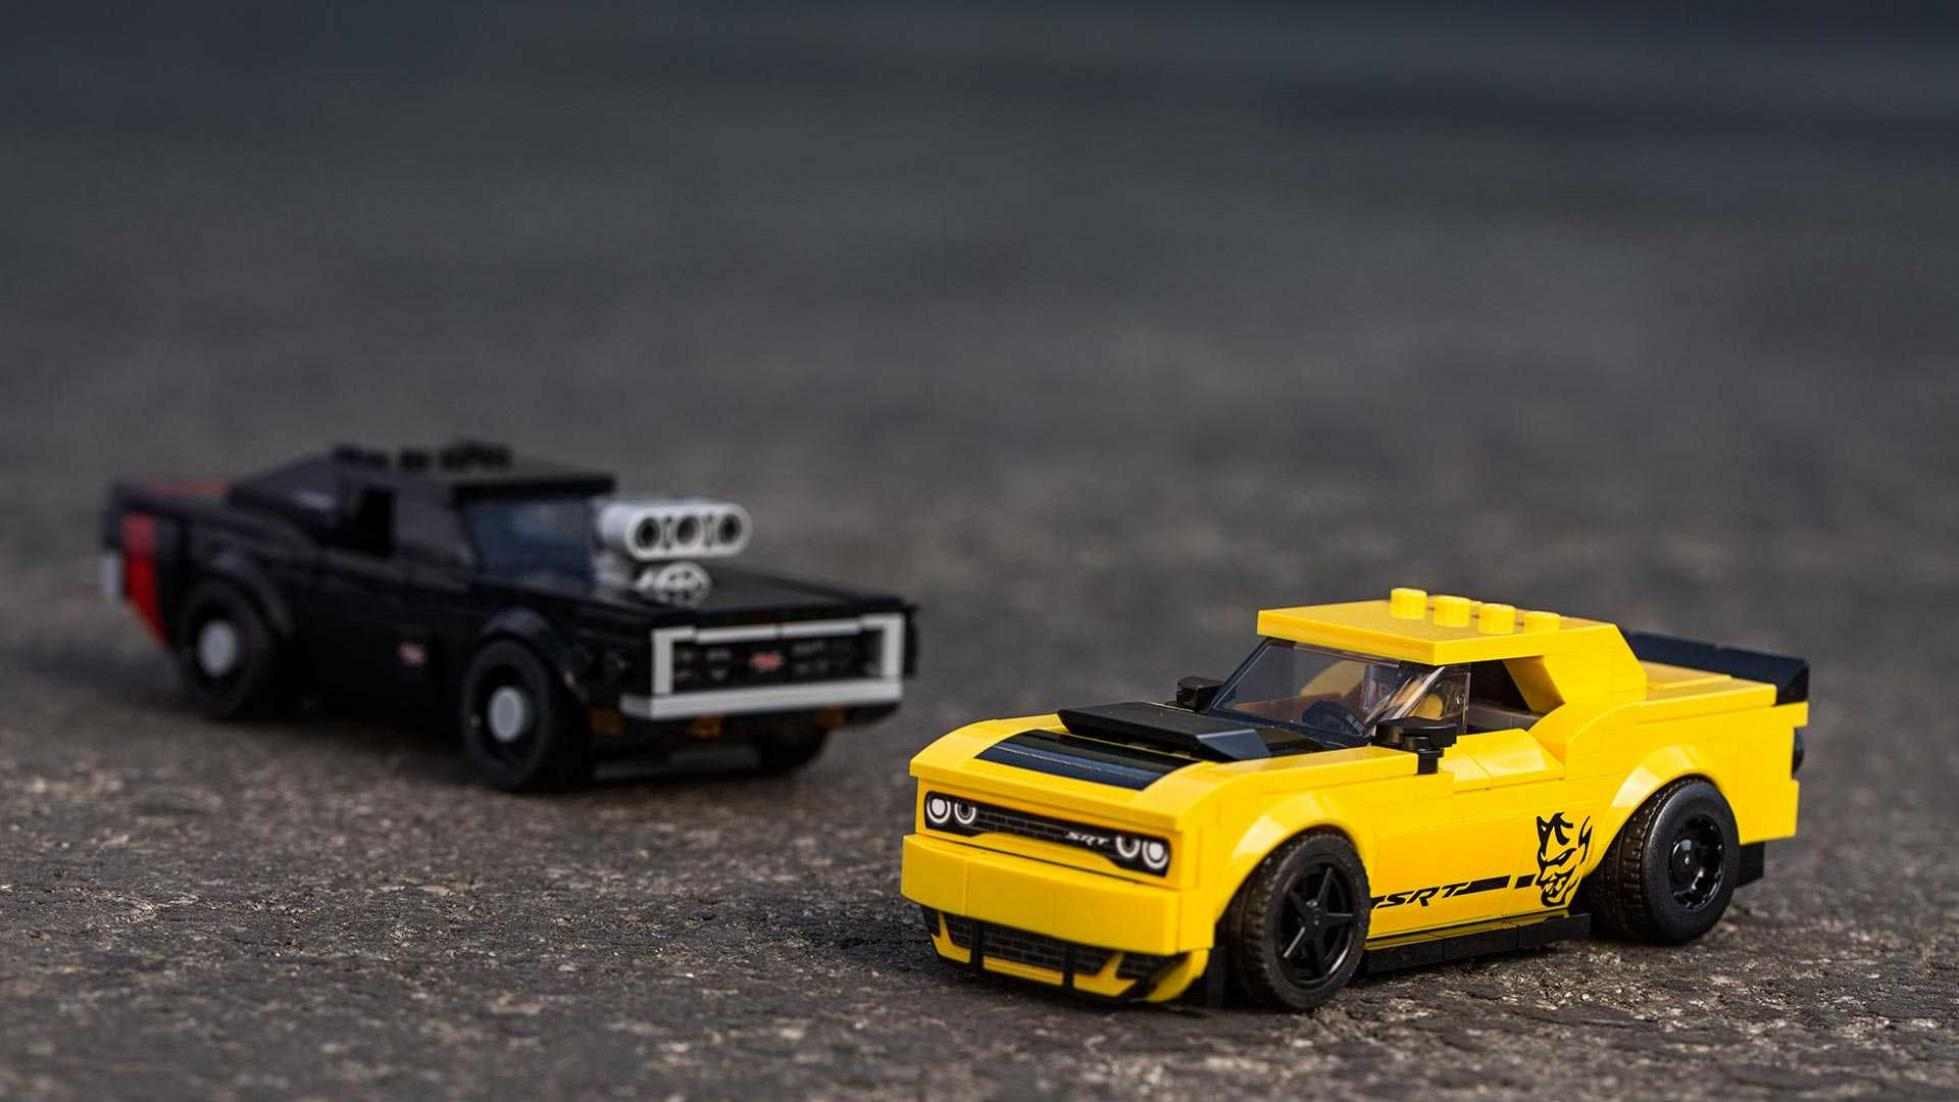 Lego S Latest Speed Champions Set Features Dodge Muscle Cars